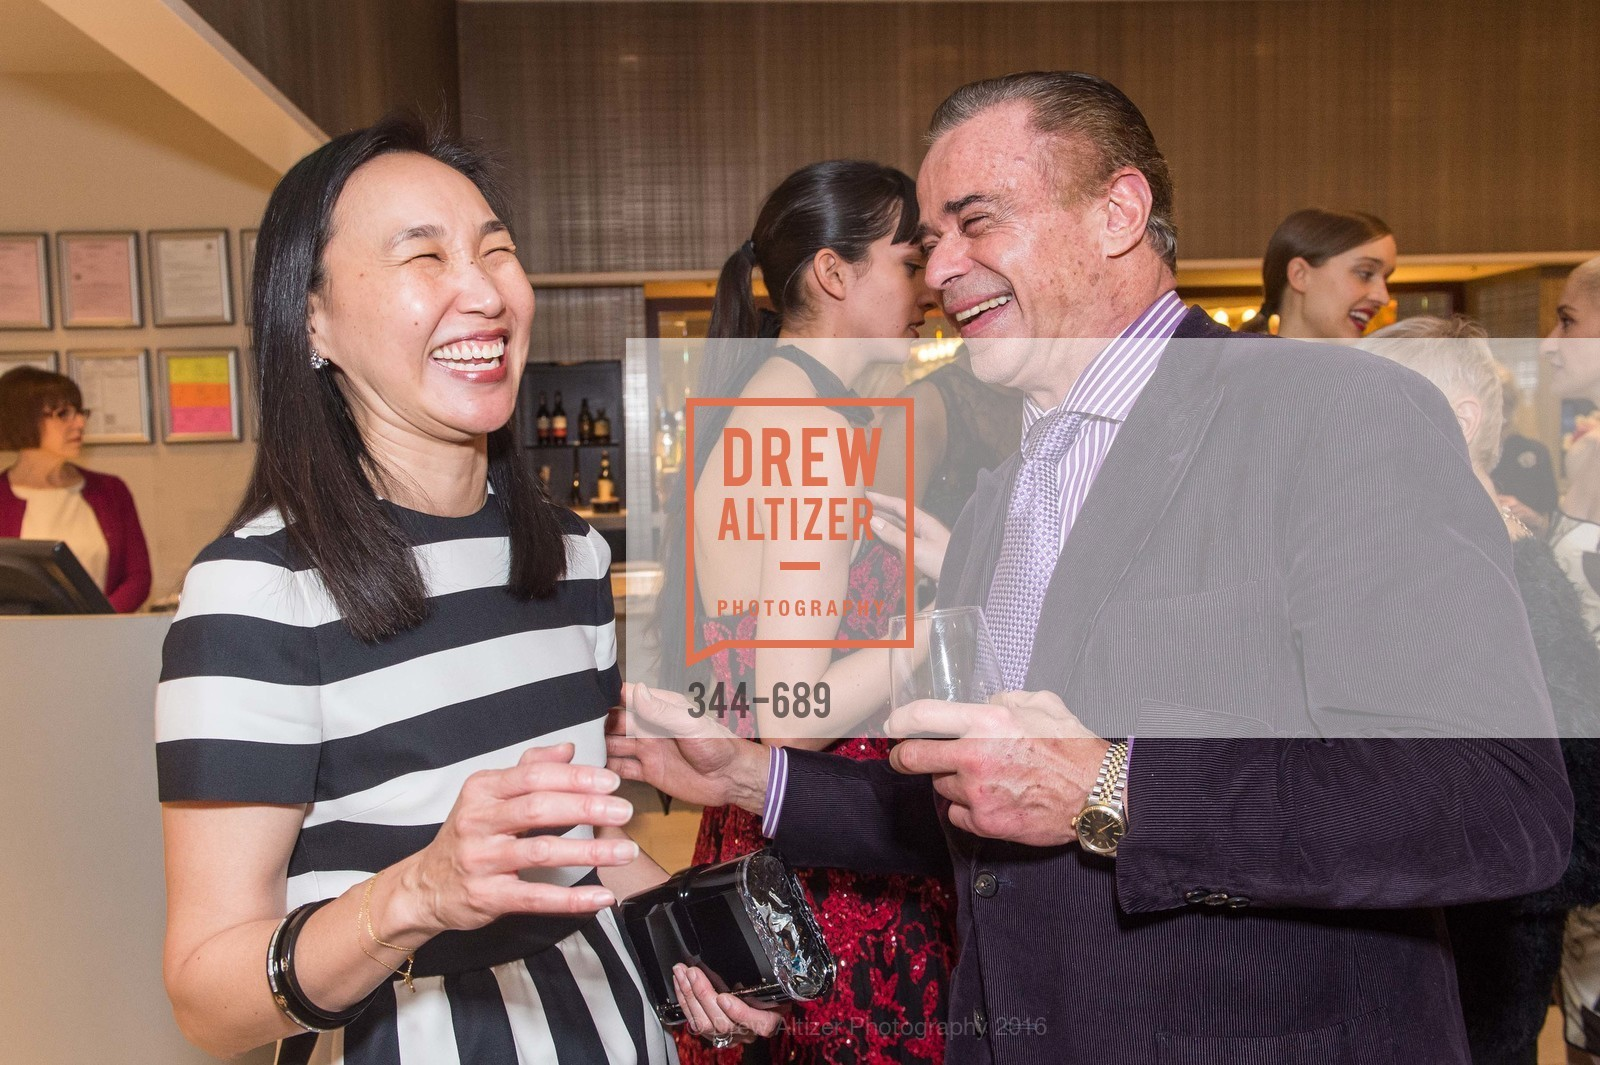 Carolyn Chang, Boaz Mazor, Oscar de la Renta Cocktail Party with Boaz Mazor, The Rotunda Restaurant, January 19th, 2016,Drew Altizer, Drew Altizer Photography, full-service agency, private events, San Francisco photographer, photographer california